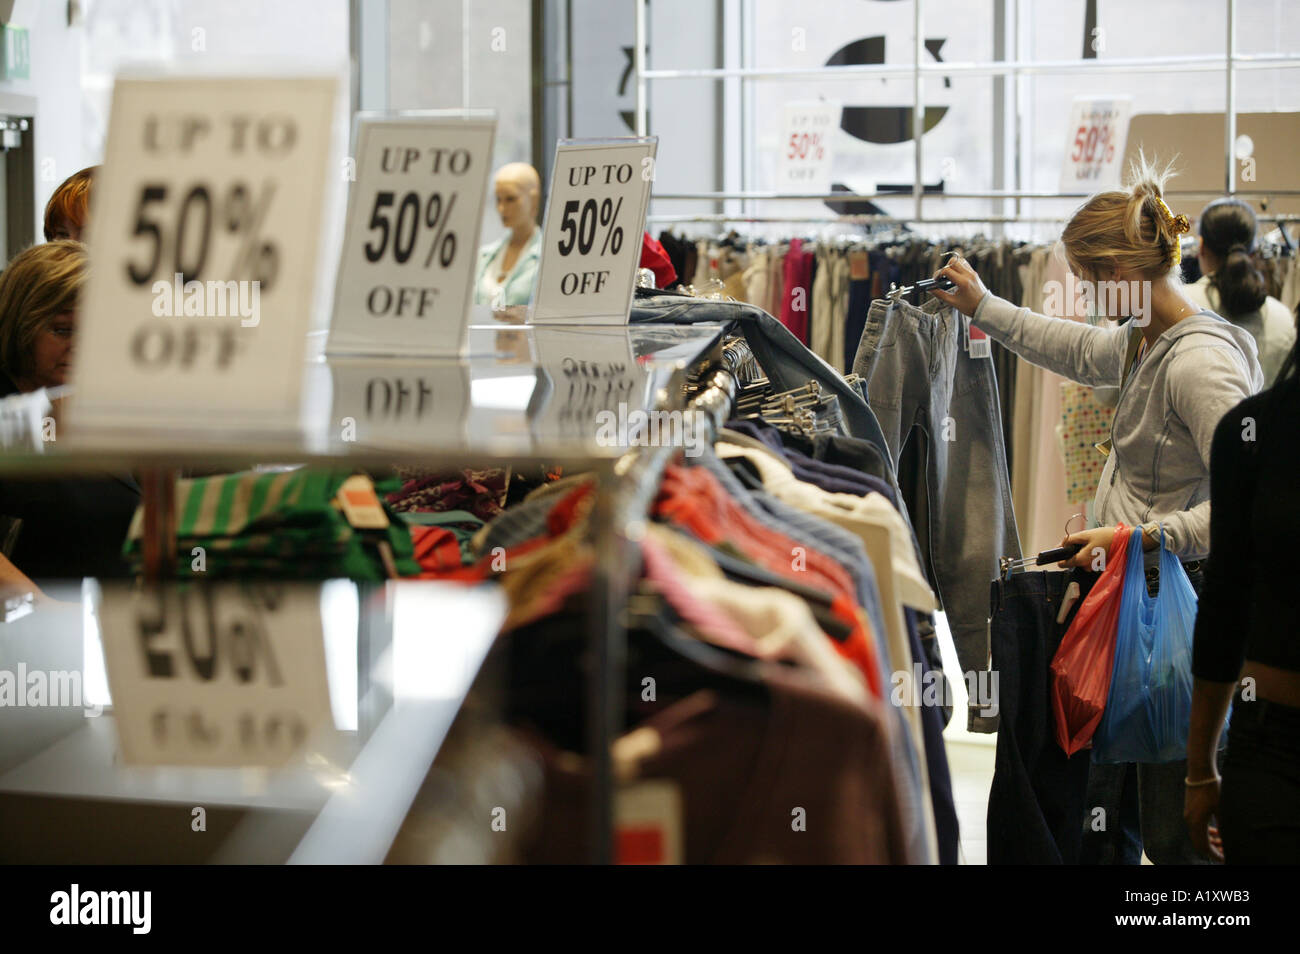 Summer Clothing Stores